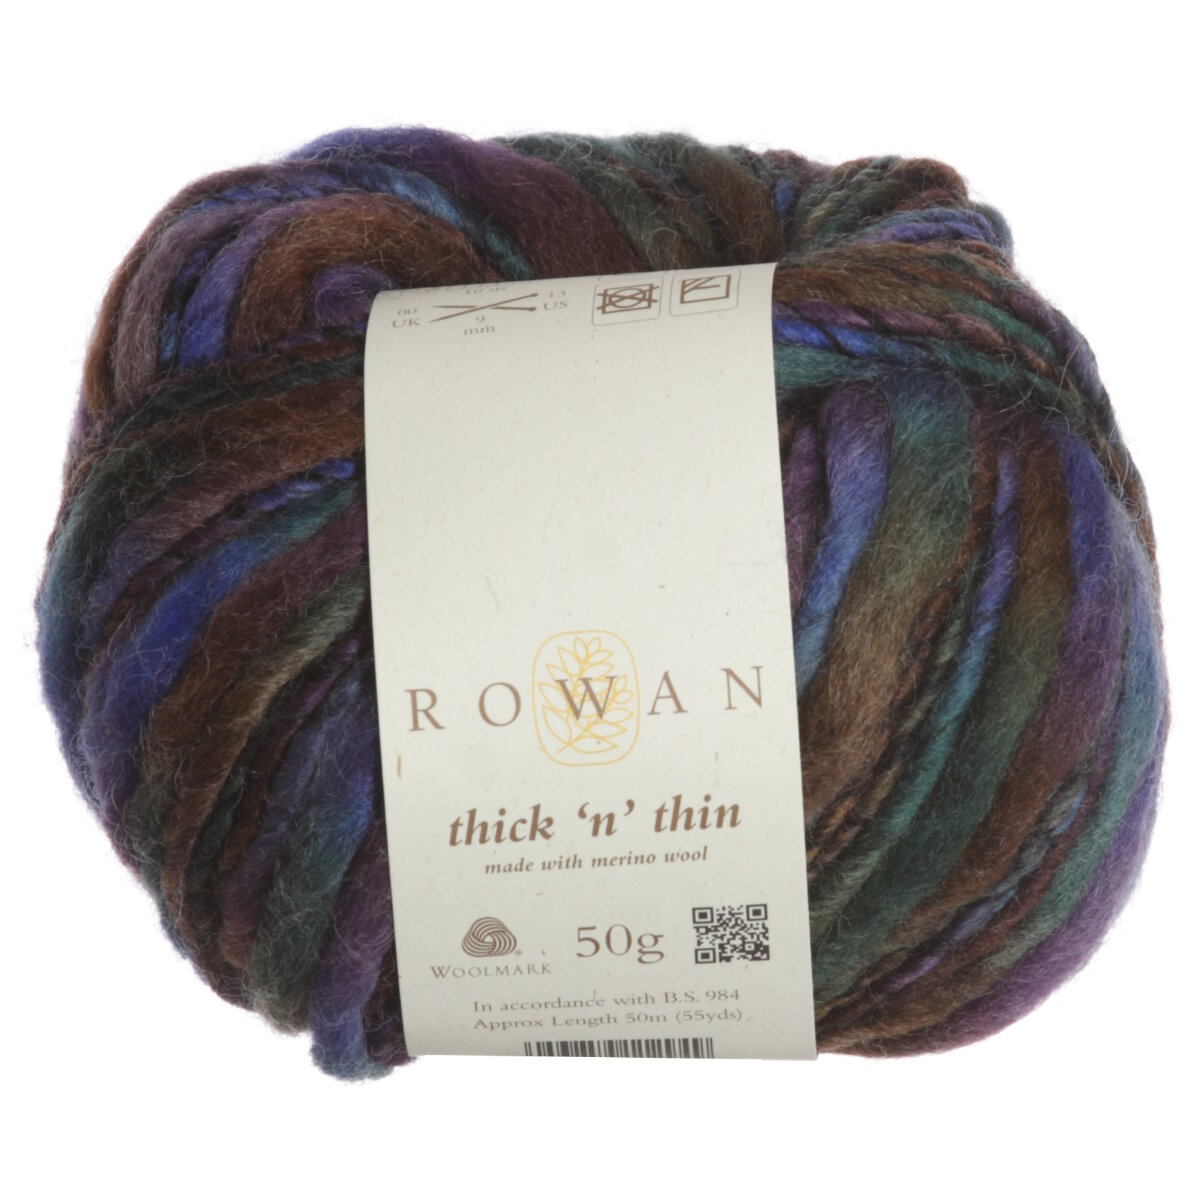 Knitting Patterns For Thin Yarn : Rowan Thick n Thin Yarn - 981 Hill at Jimmy Beans Wool